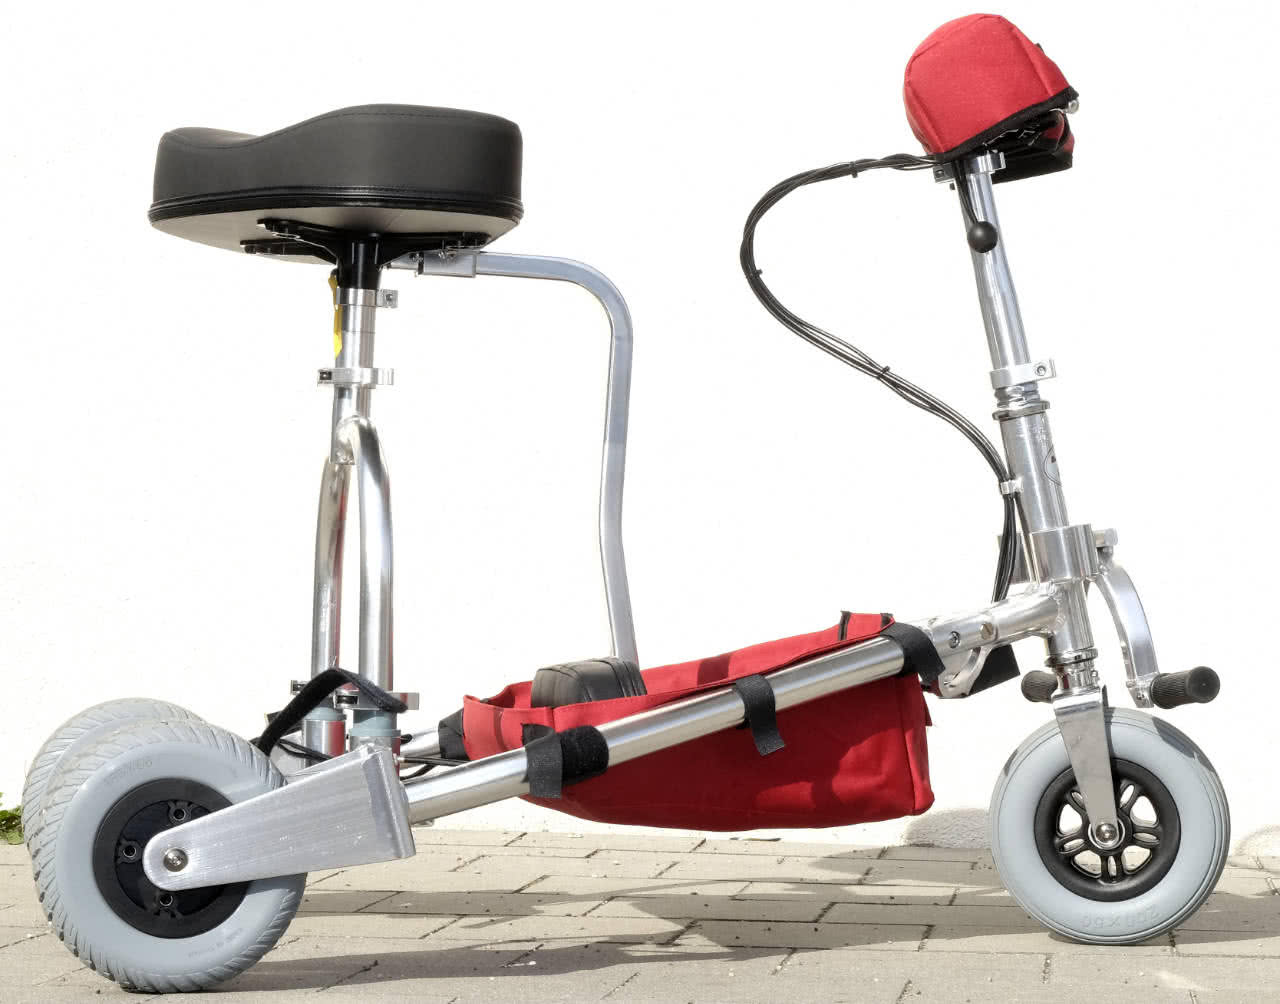 Replace the seat of the travelScoot and close the clamp